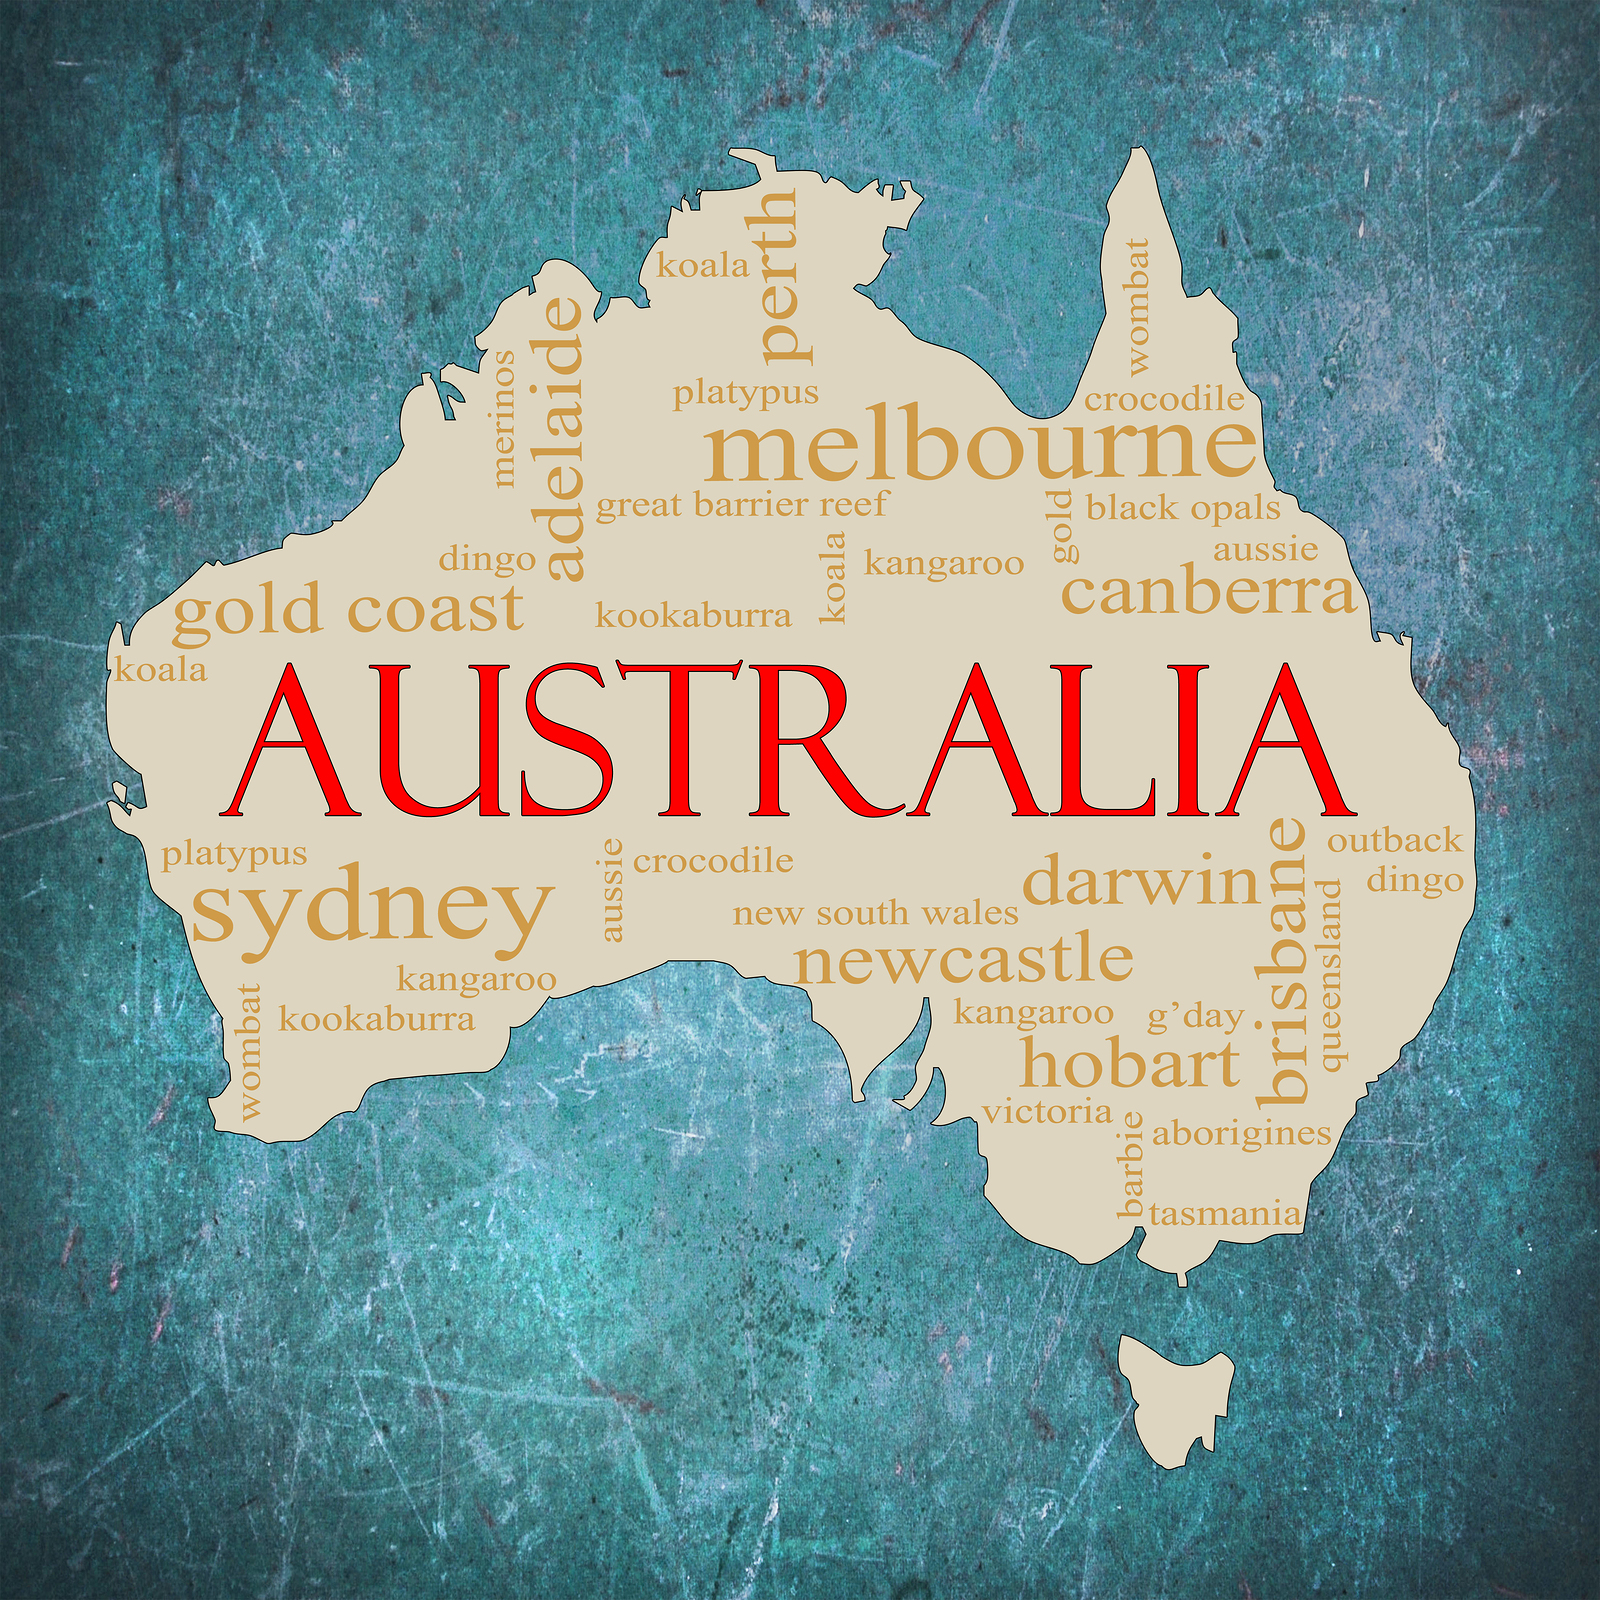 Australia E-commerce market | img via http://www.bigstockphoto.com/image-62893777/stock-photo-blue-grunge-australia-word-cloud